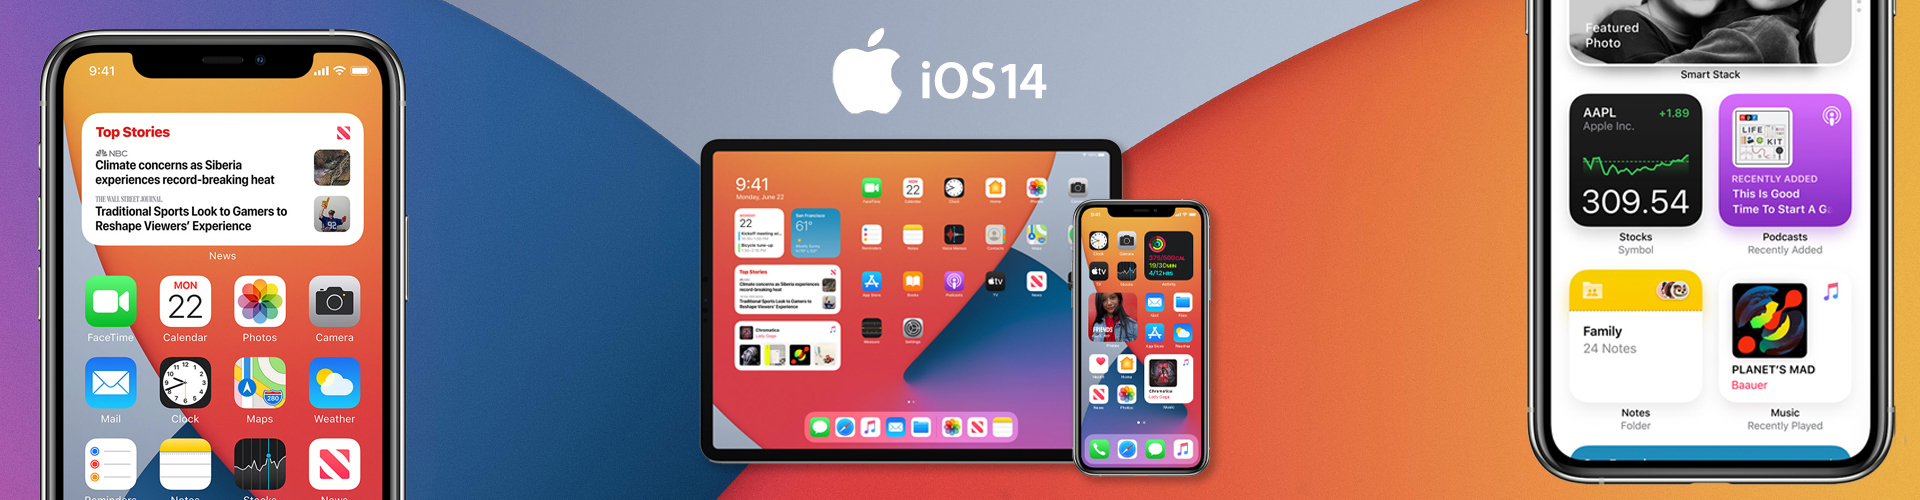 iOS 14 – What's New?